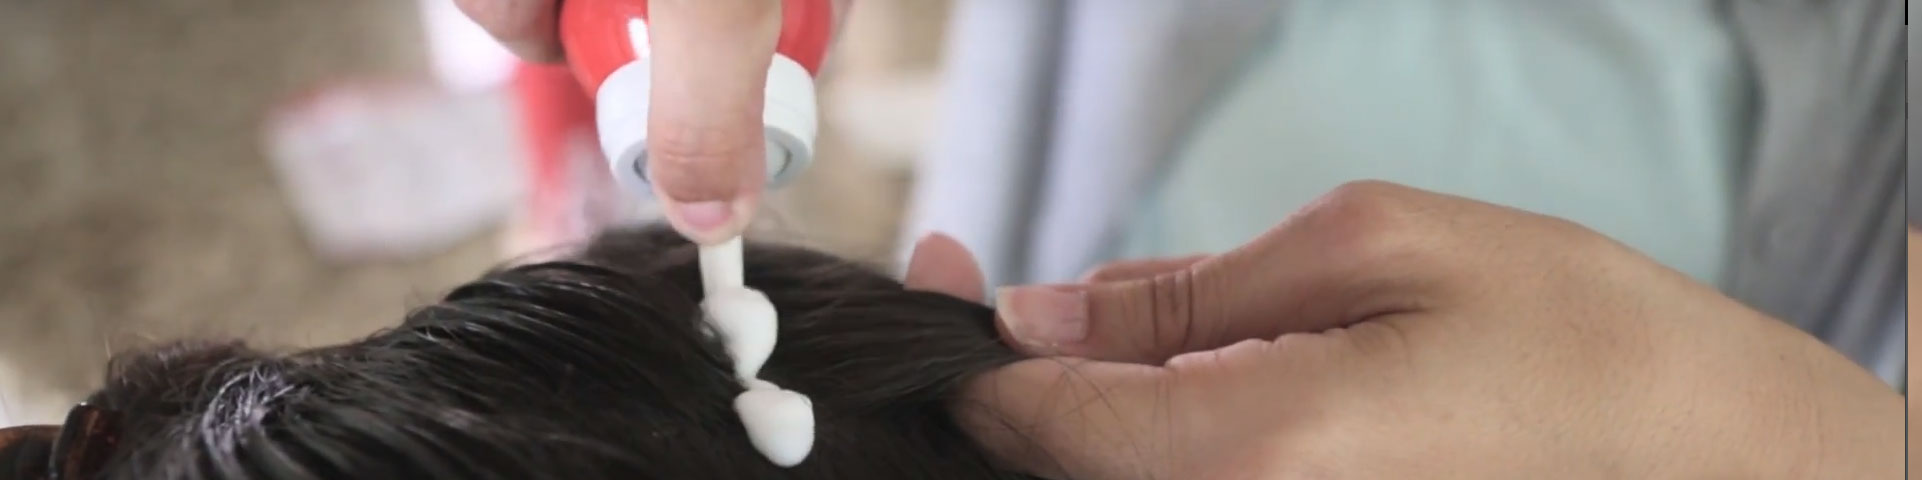 How to apply Vamousse Lice Treatment